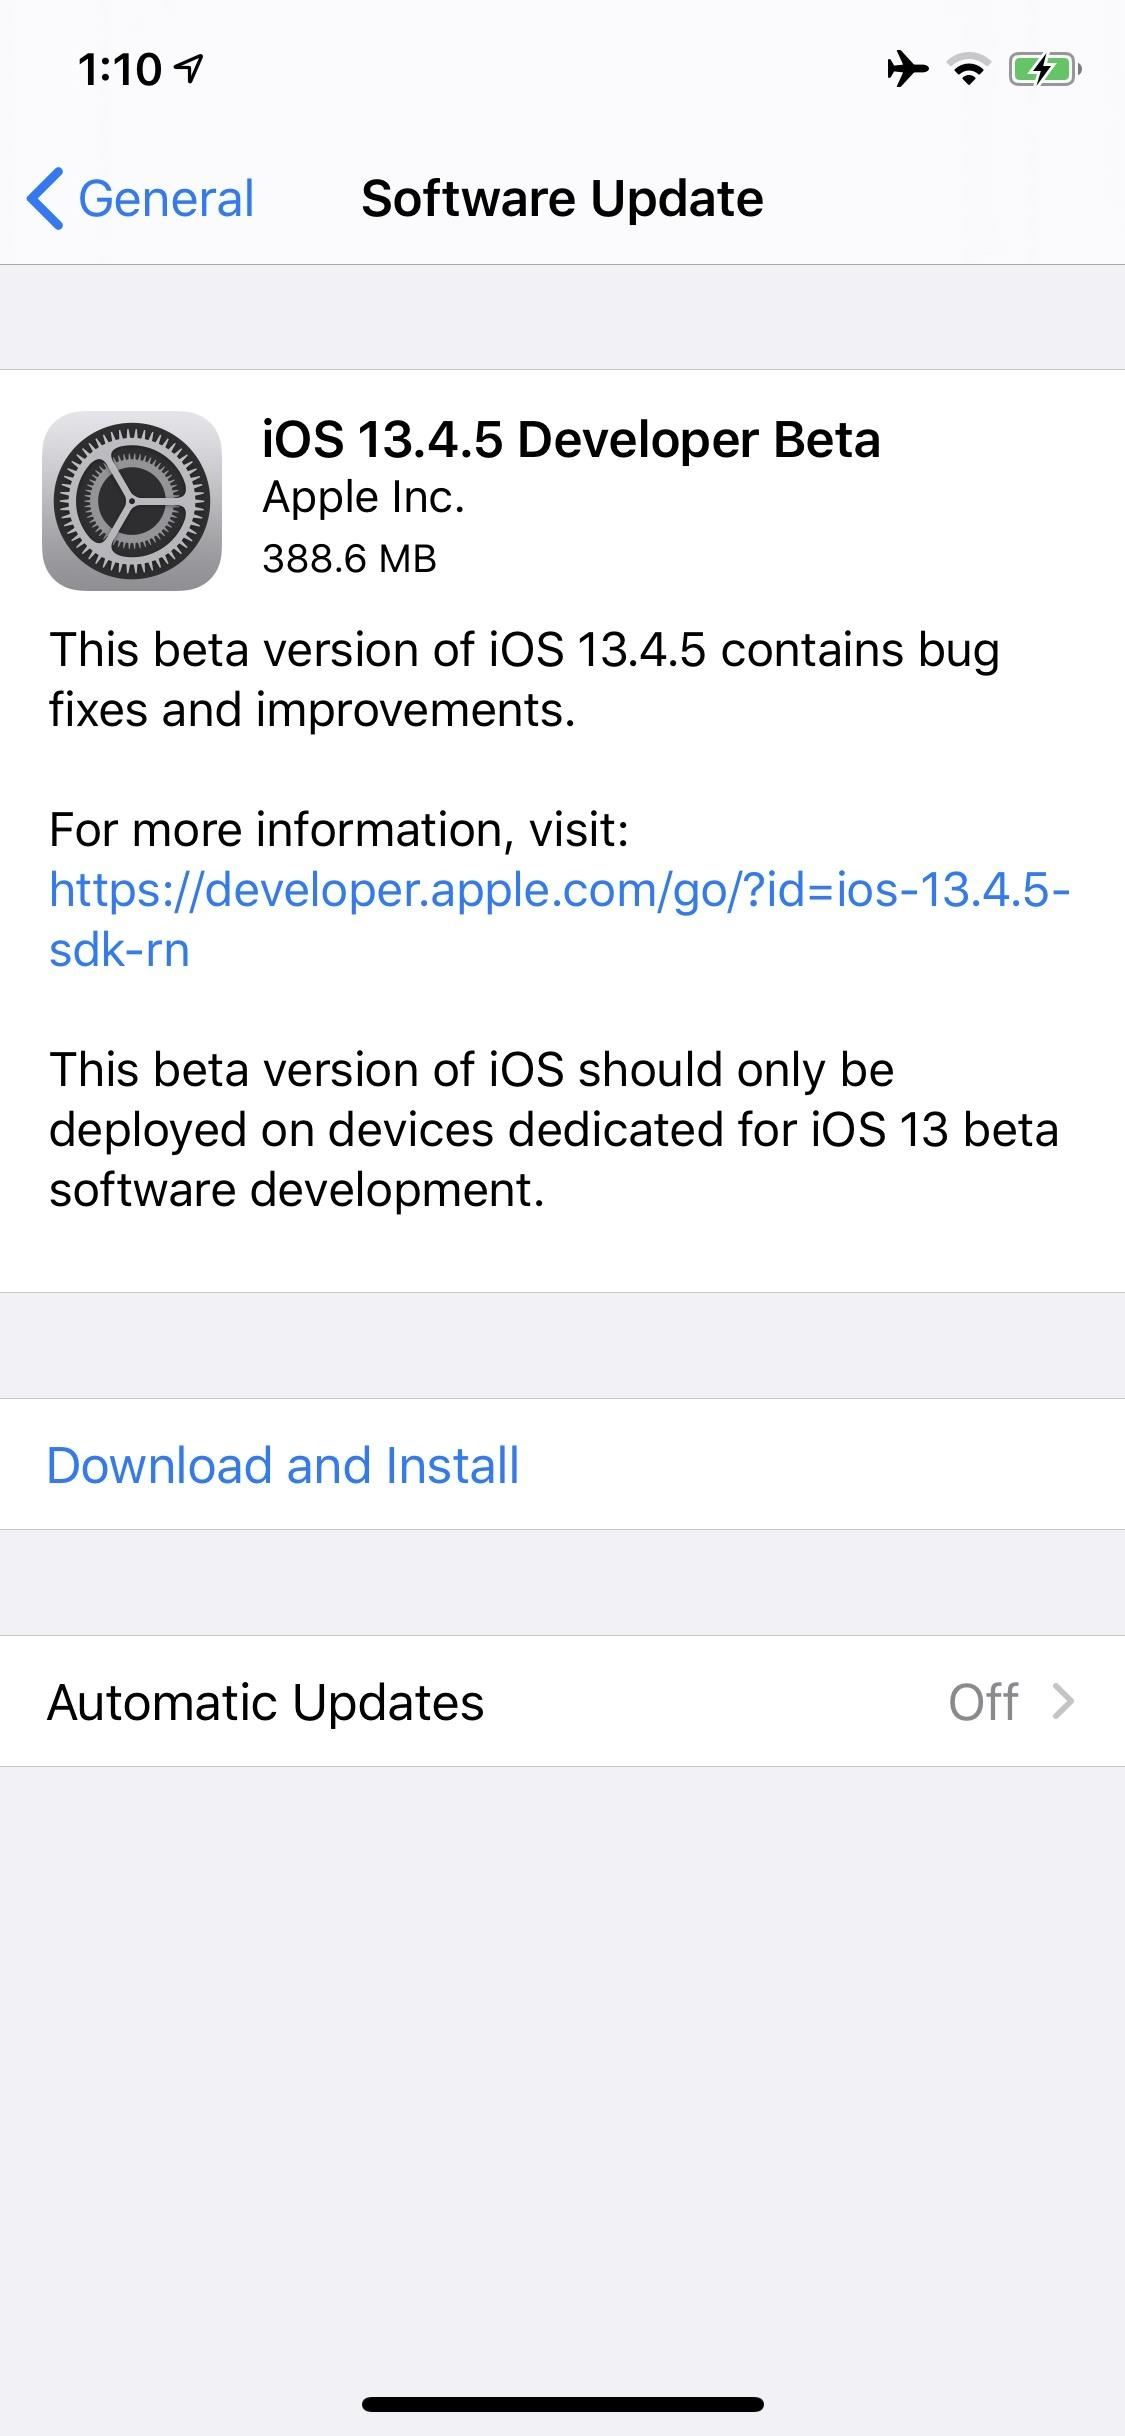 Apple Just Released iOS 13.4.5 Developer Beta 1 for iPhone, Includes New Apple Music Feature